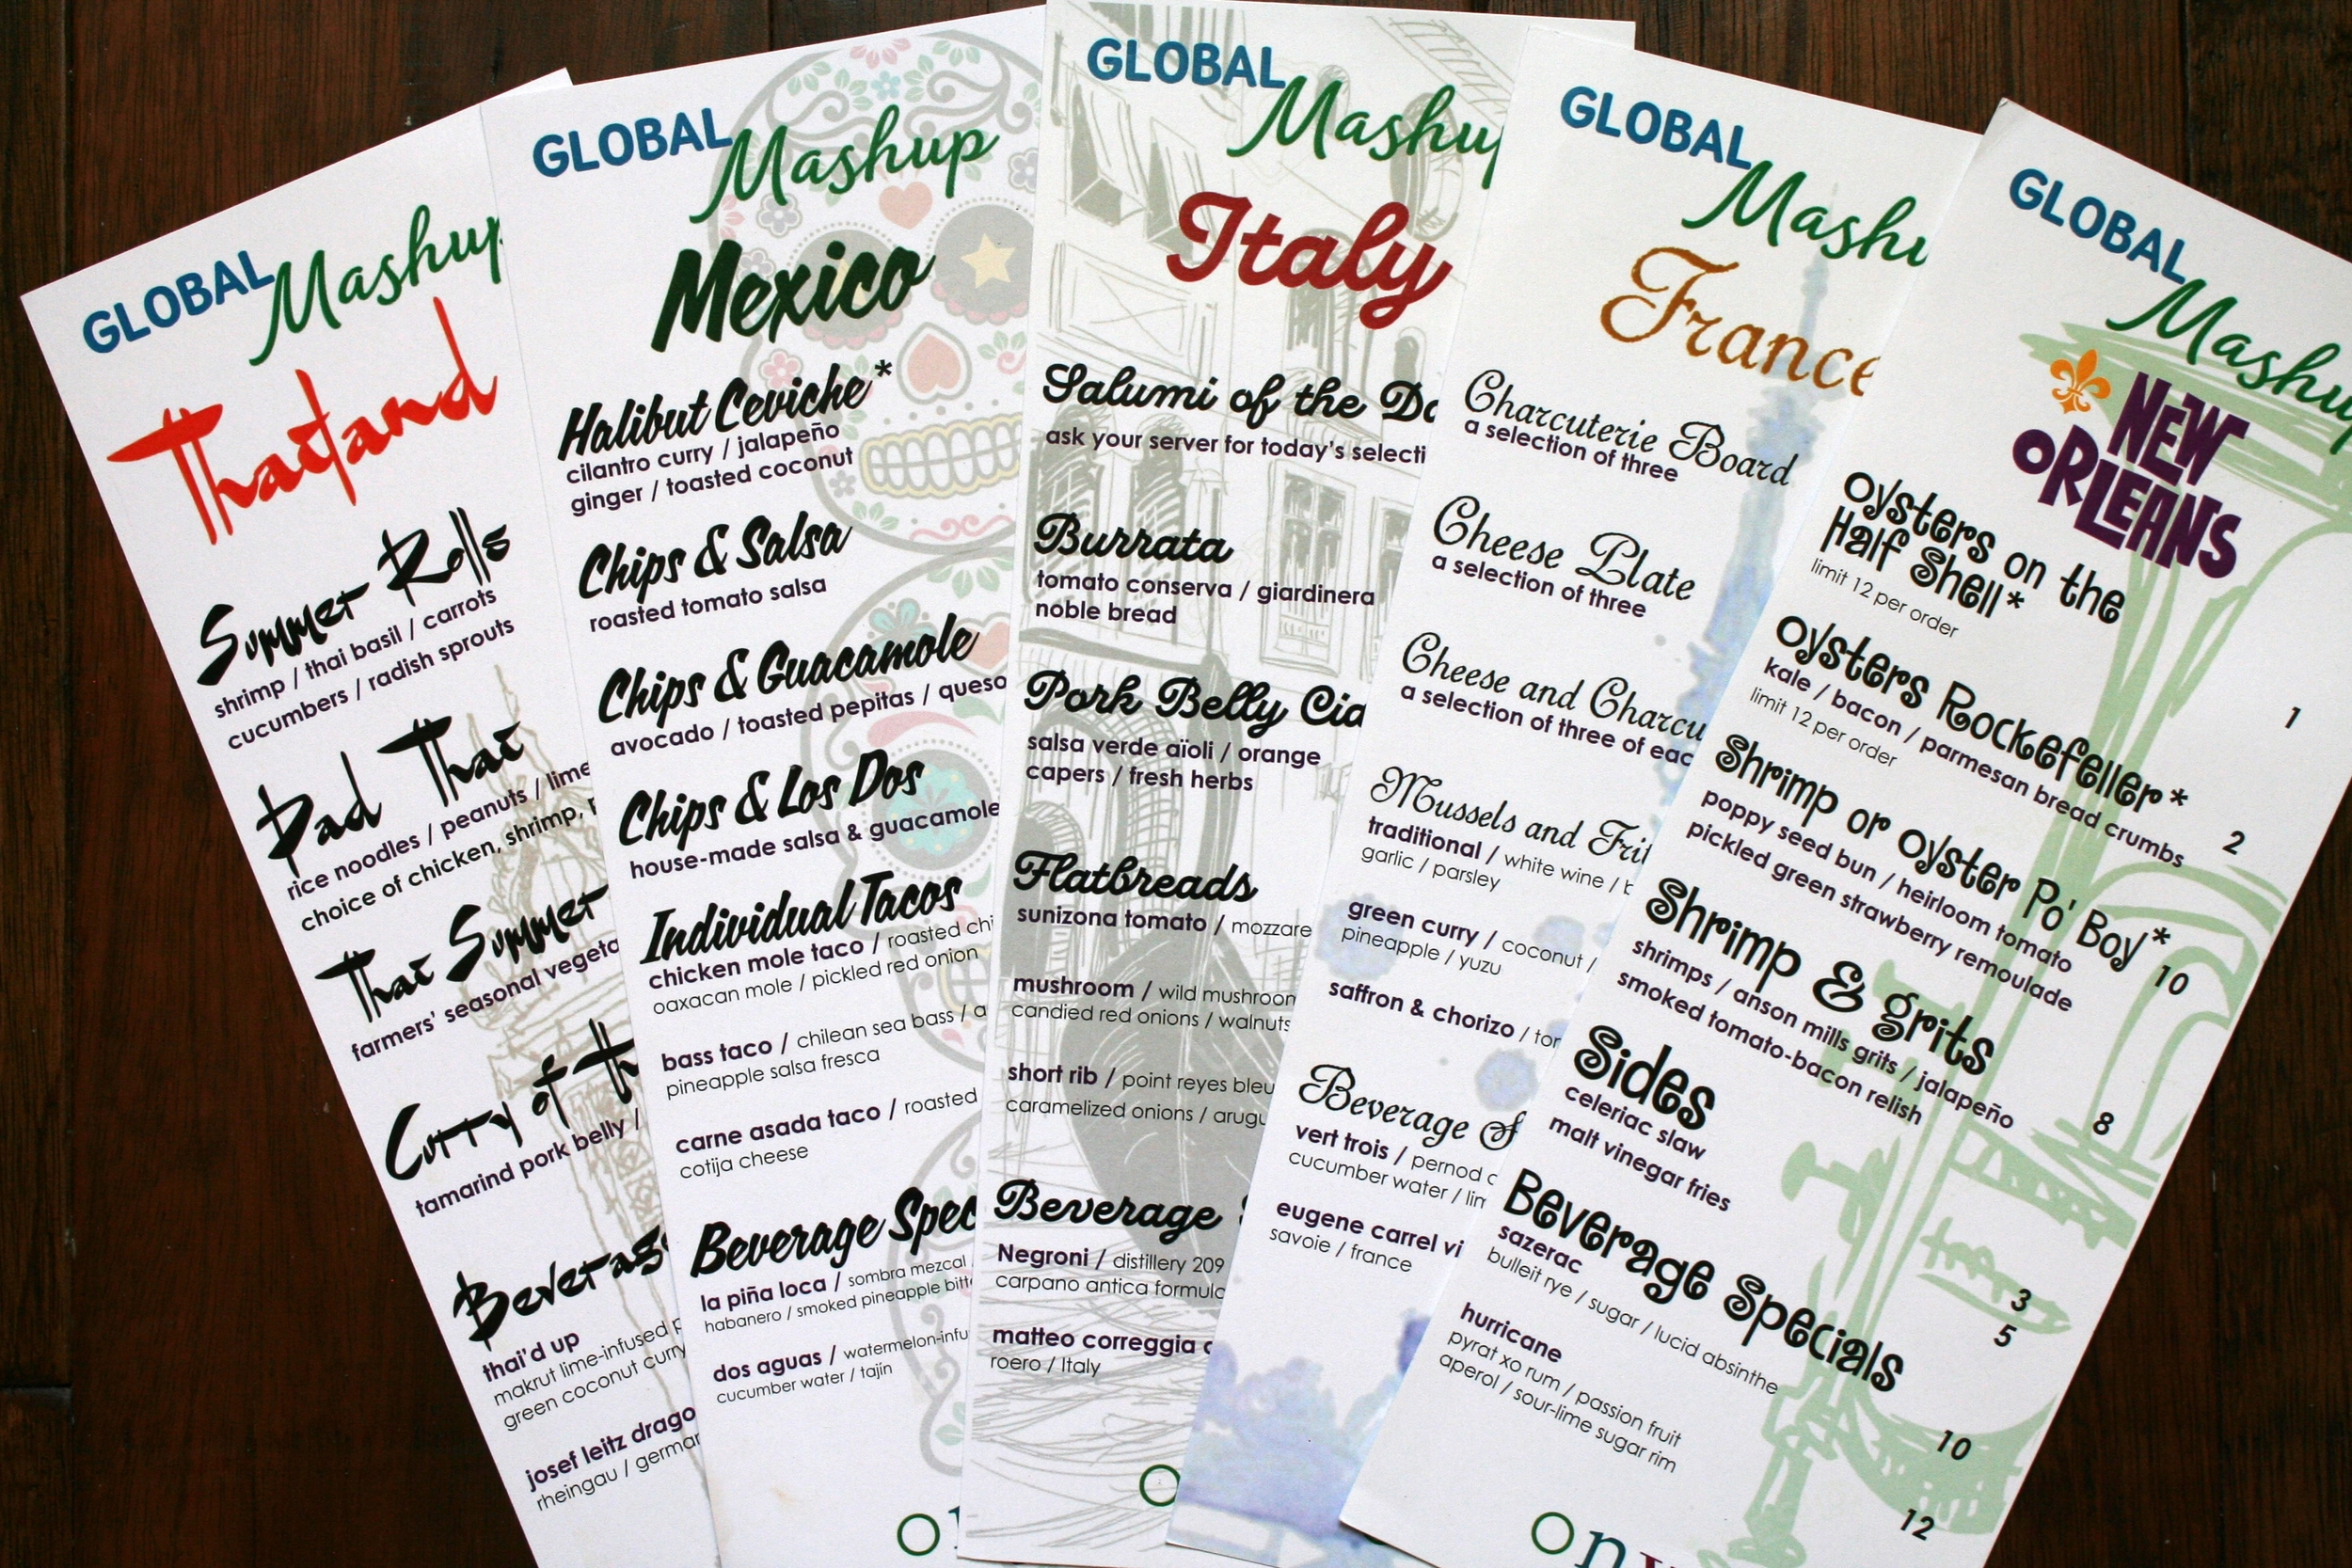 Global Mashup menus